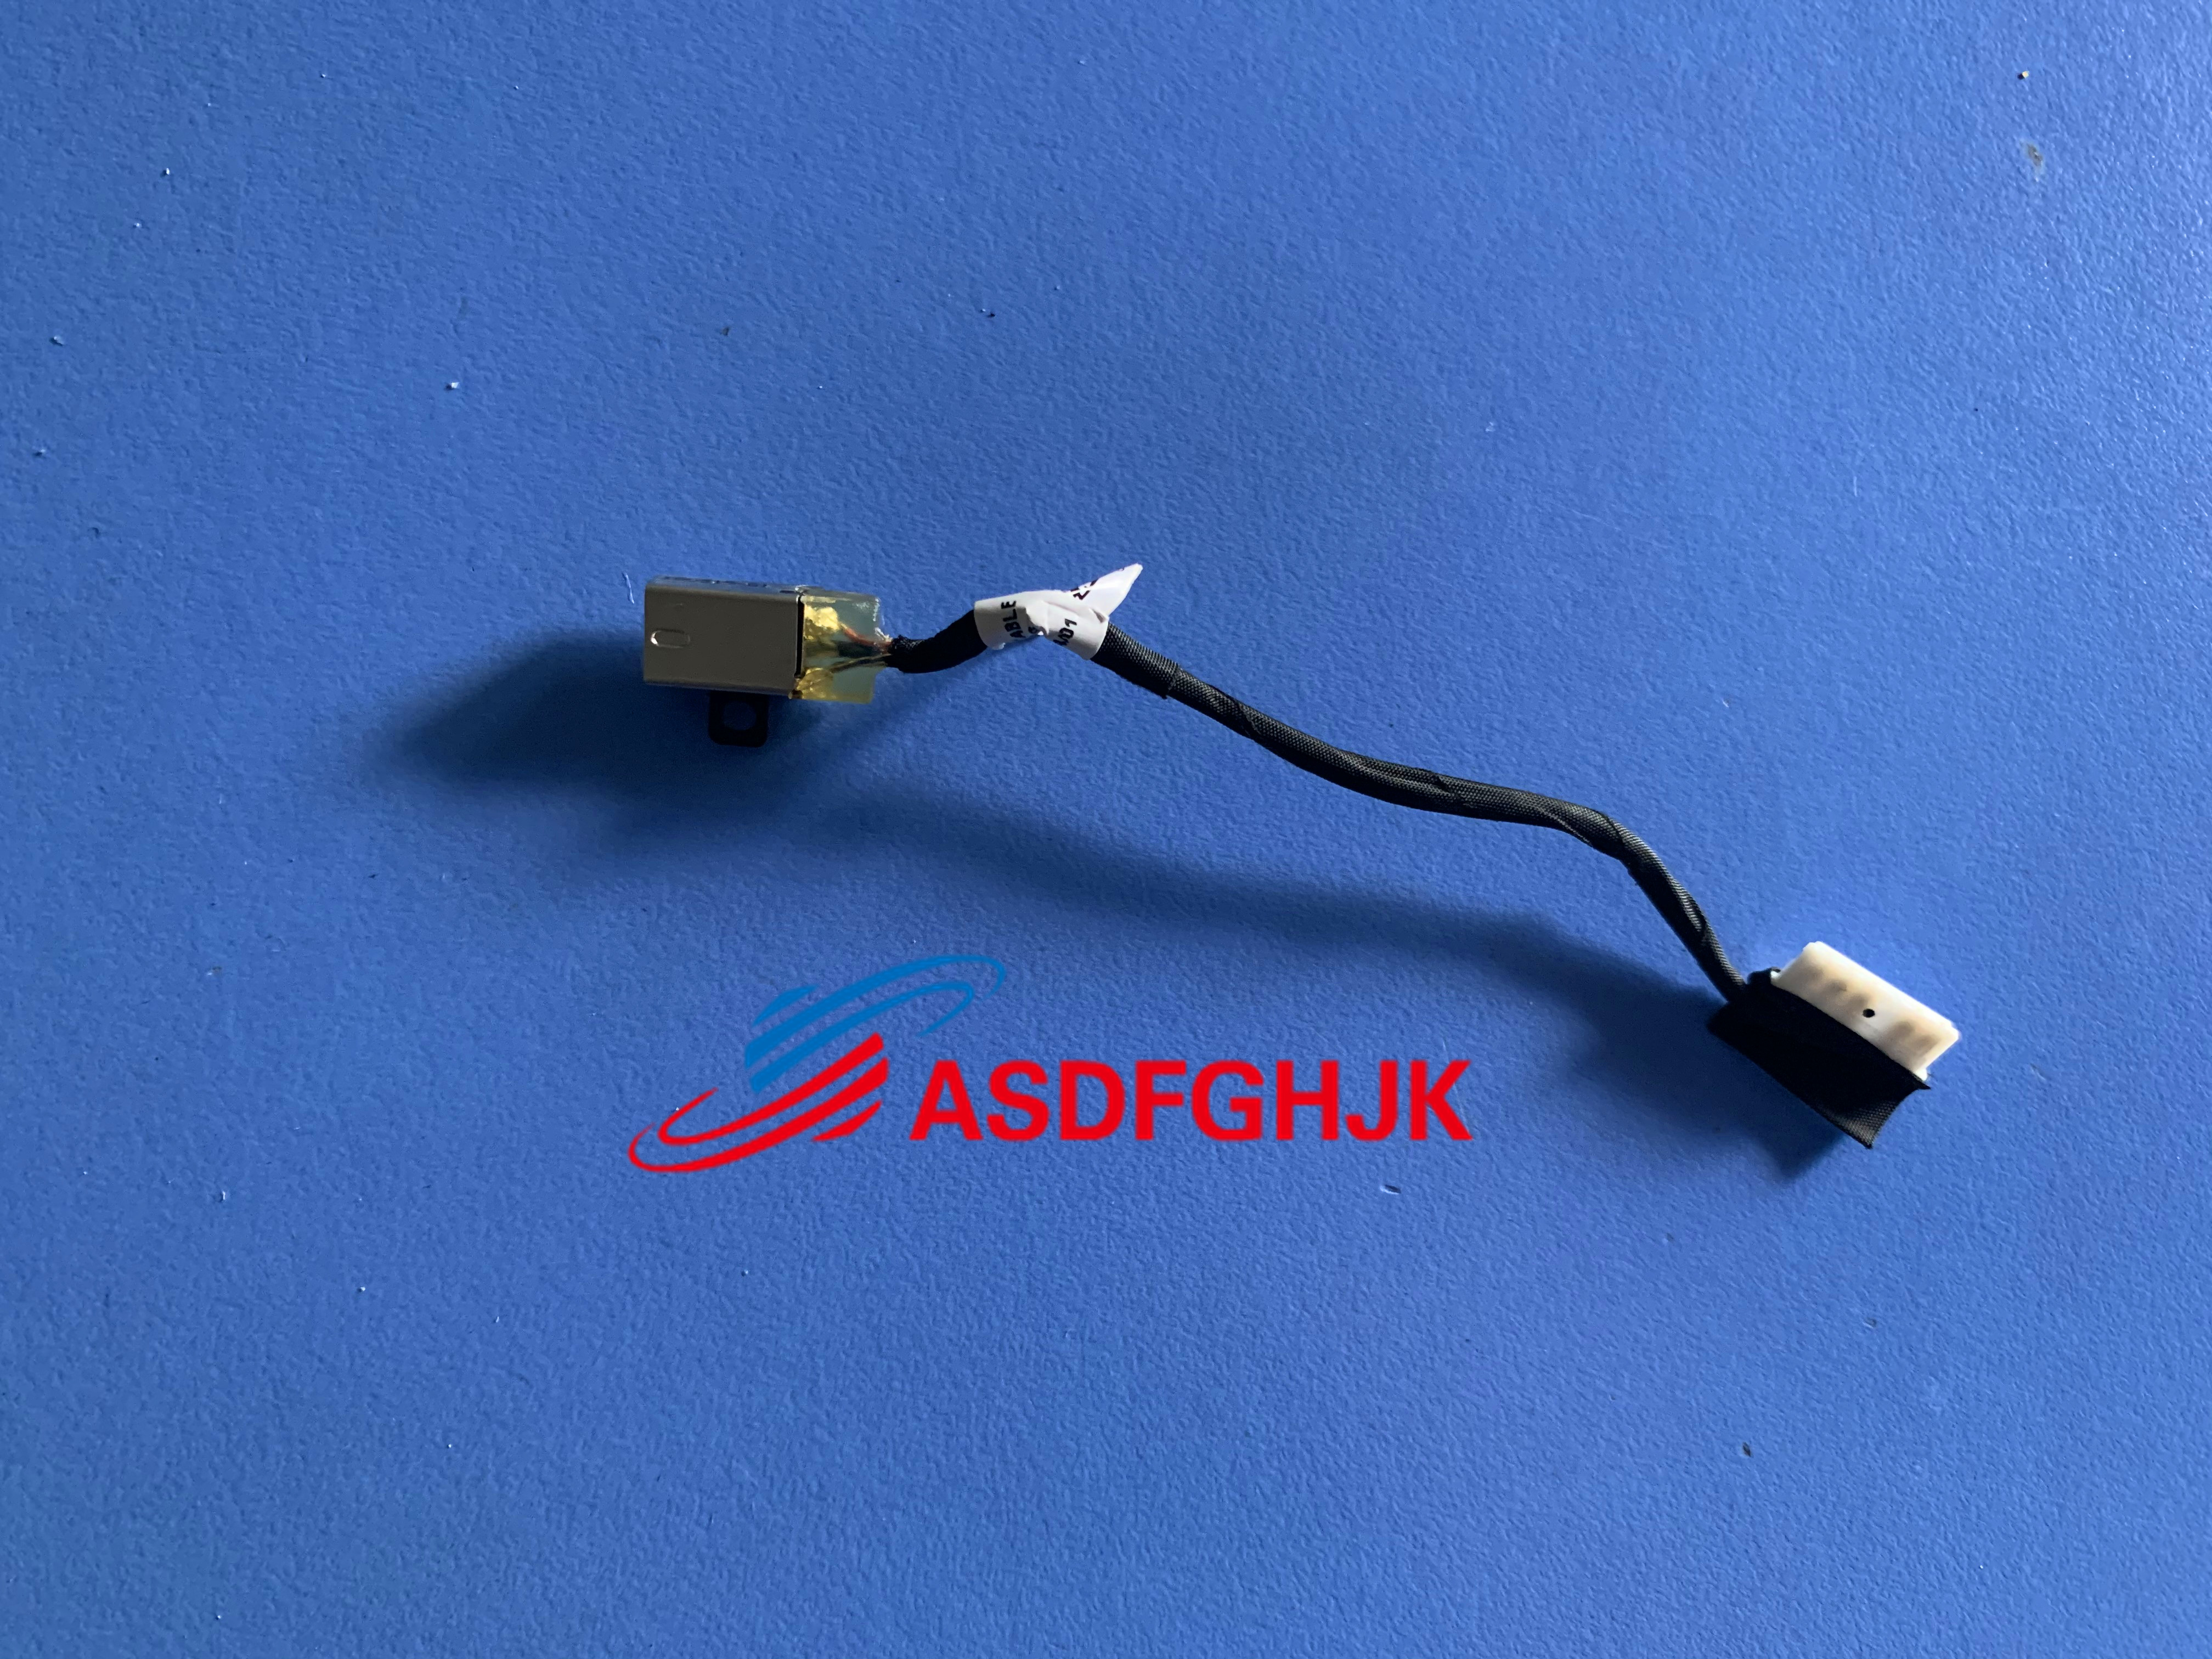 DC Power Jack for <font><b>Dell</b></font> Latitude 3490 <font><b>3590</b></font> E3490 E3590 0228R6 228R6 cn-0228r6 image